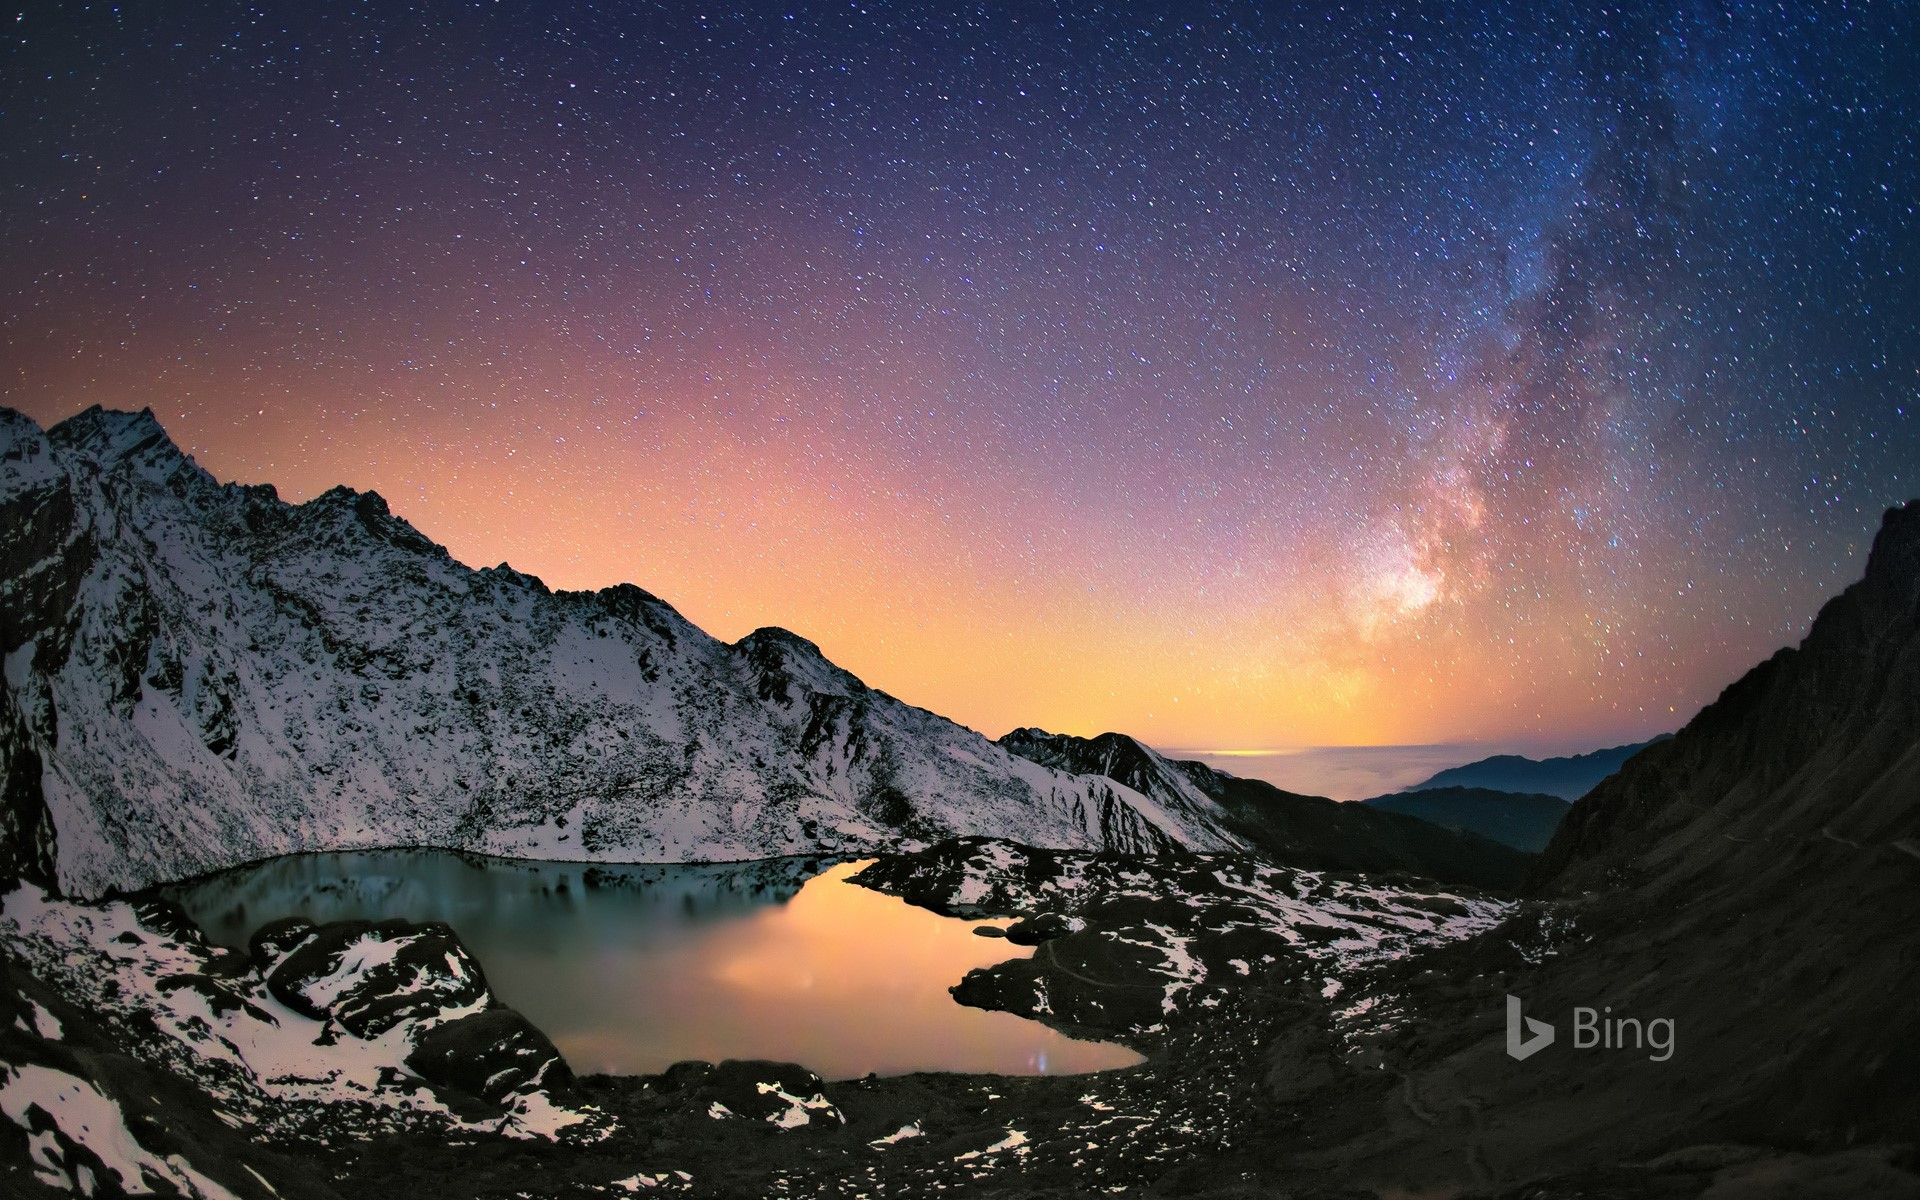 Nepal's Gosaikunda Lake in the Himalayas and the Milky Way above